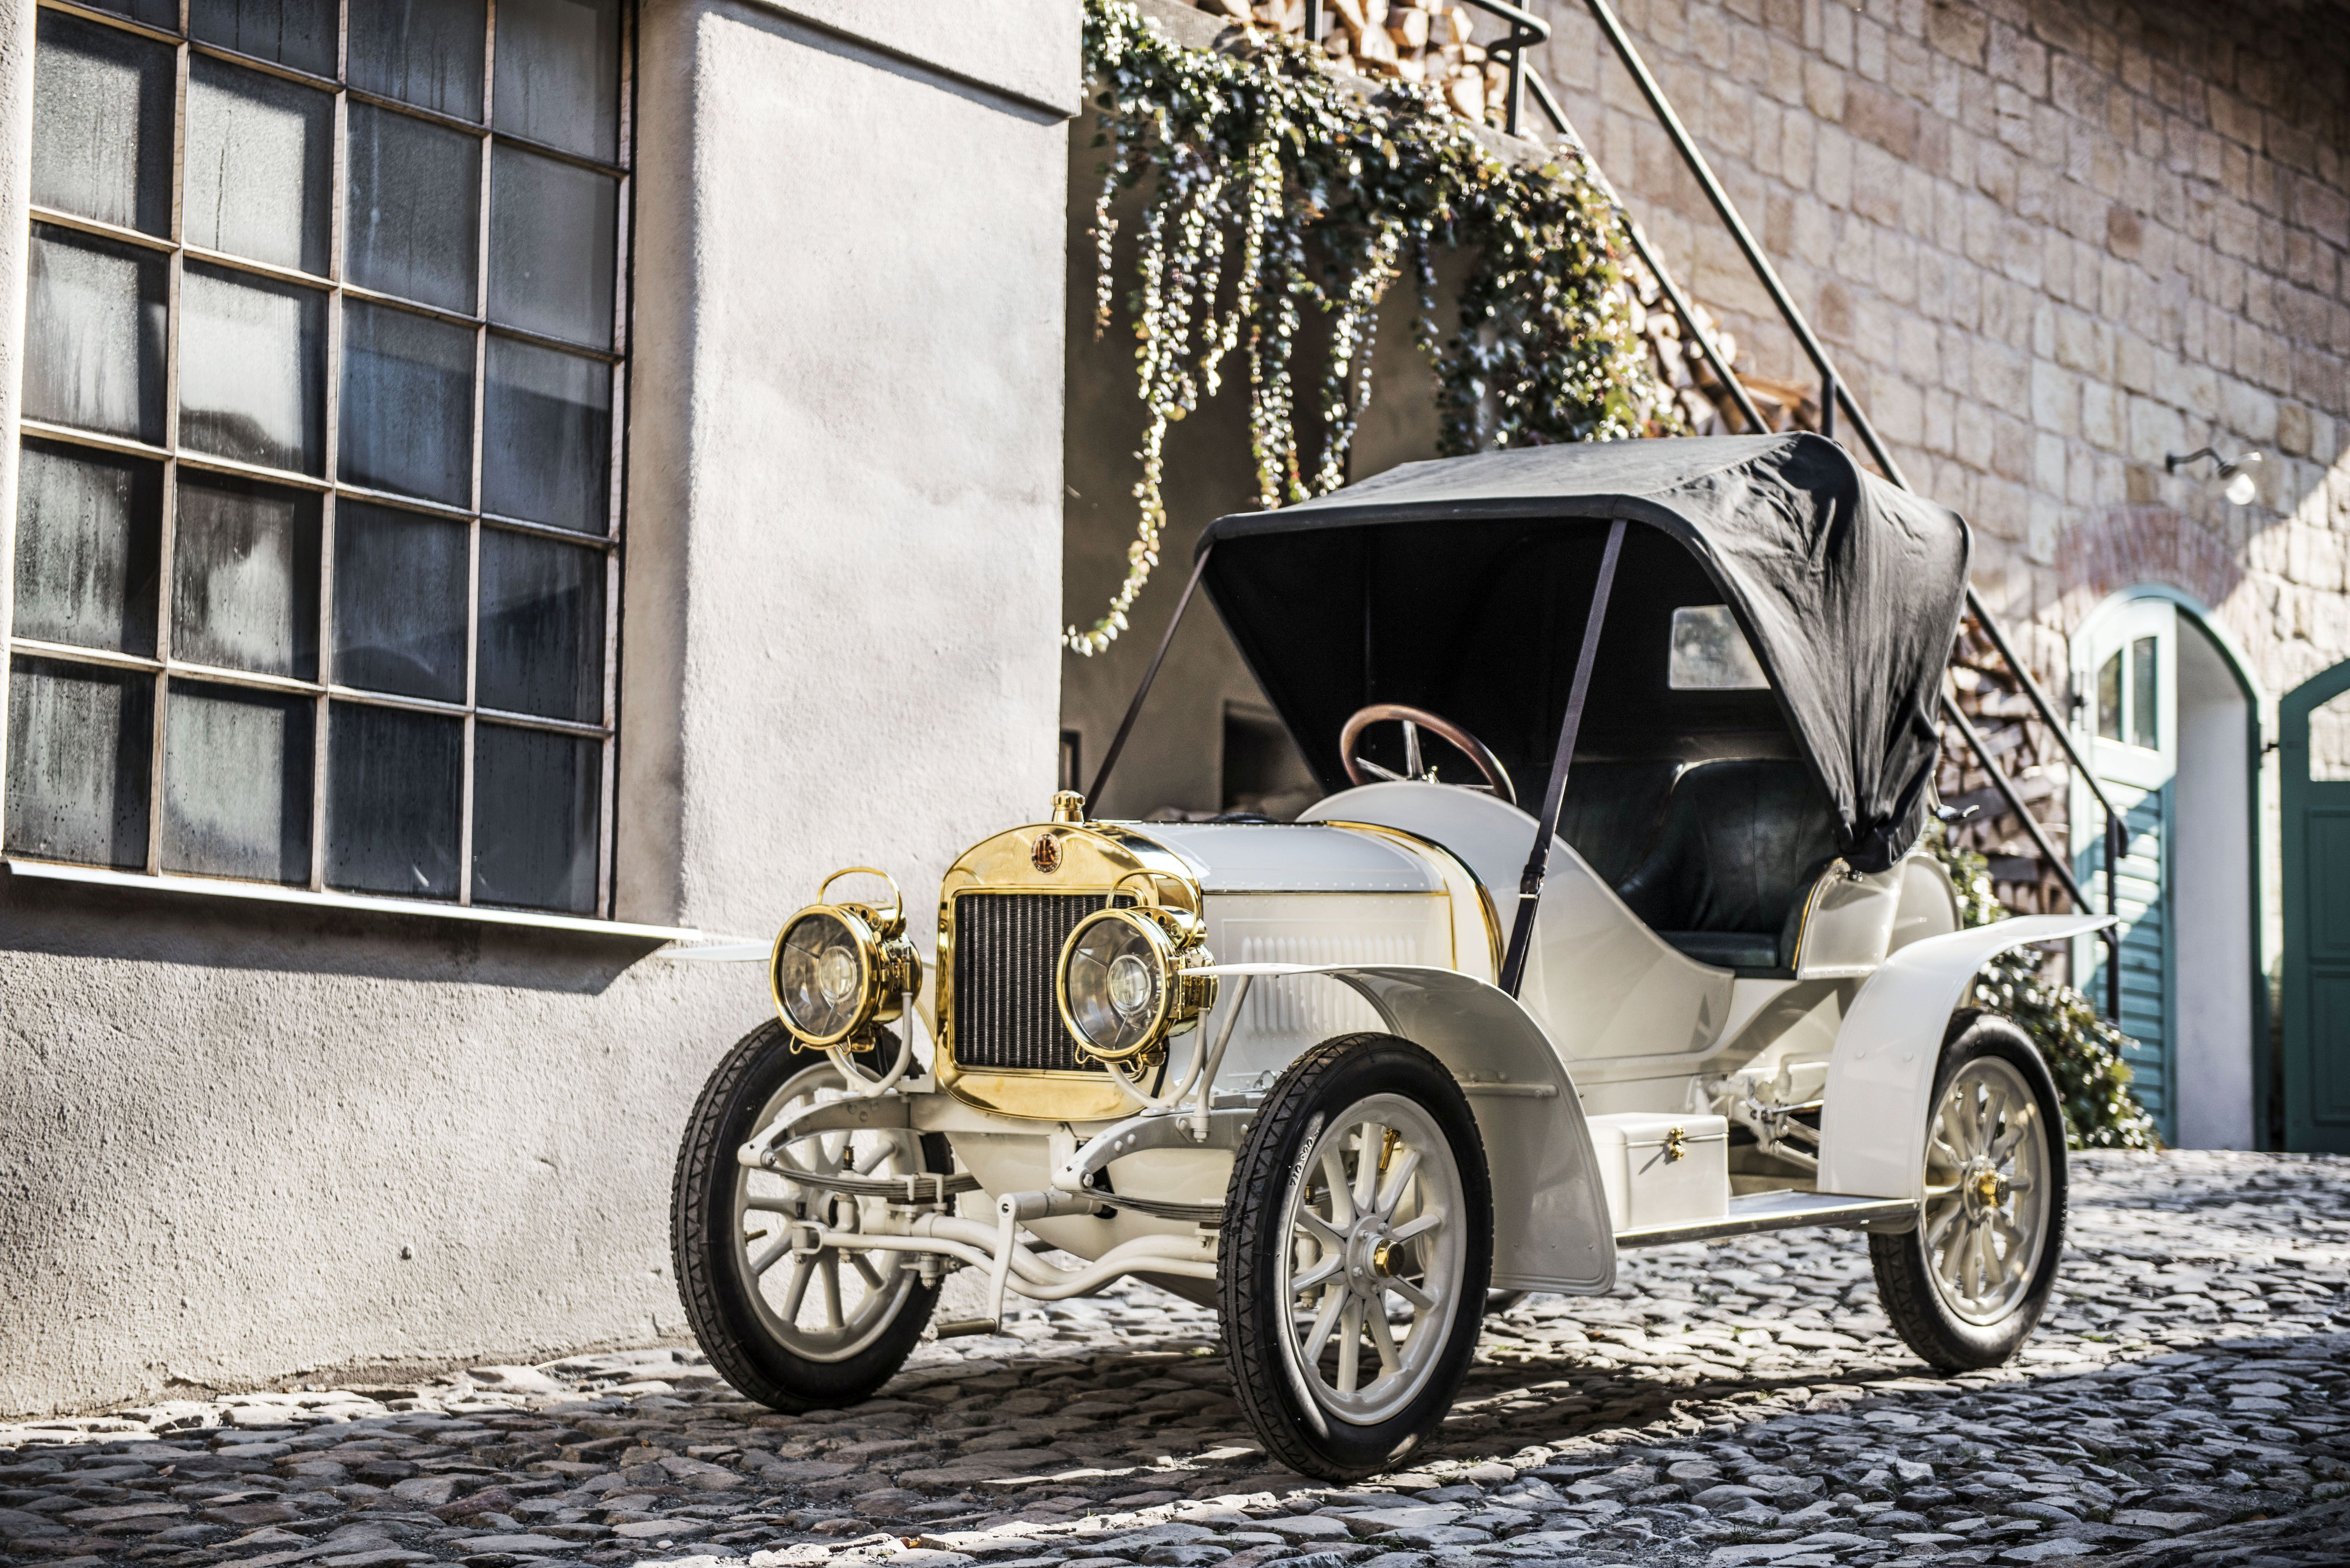 SKODA showcases iconic models from its 125-year history at Rétromobile - Image 3